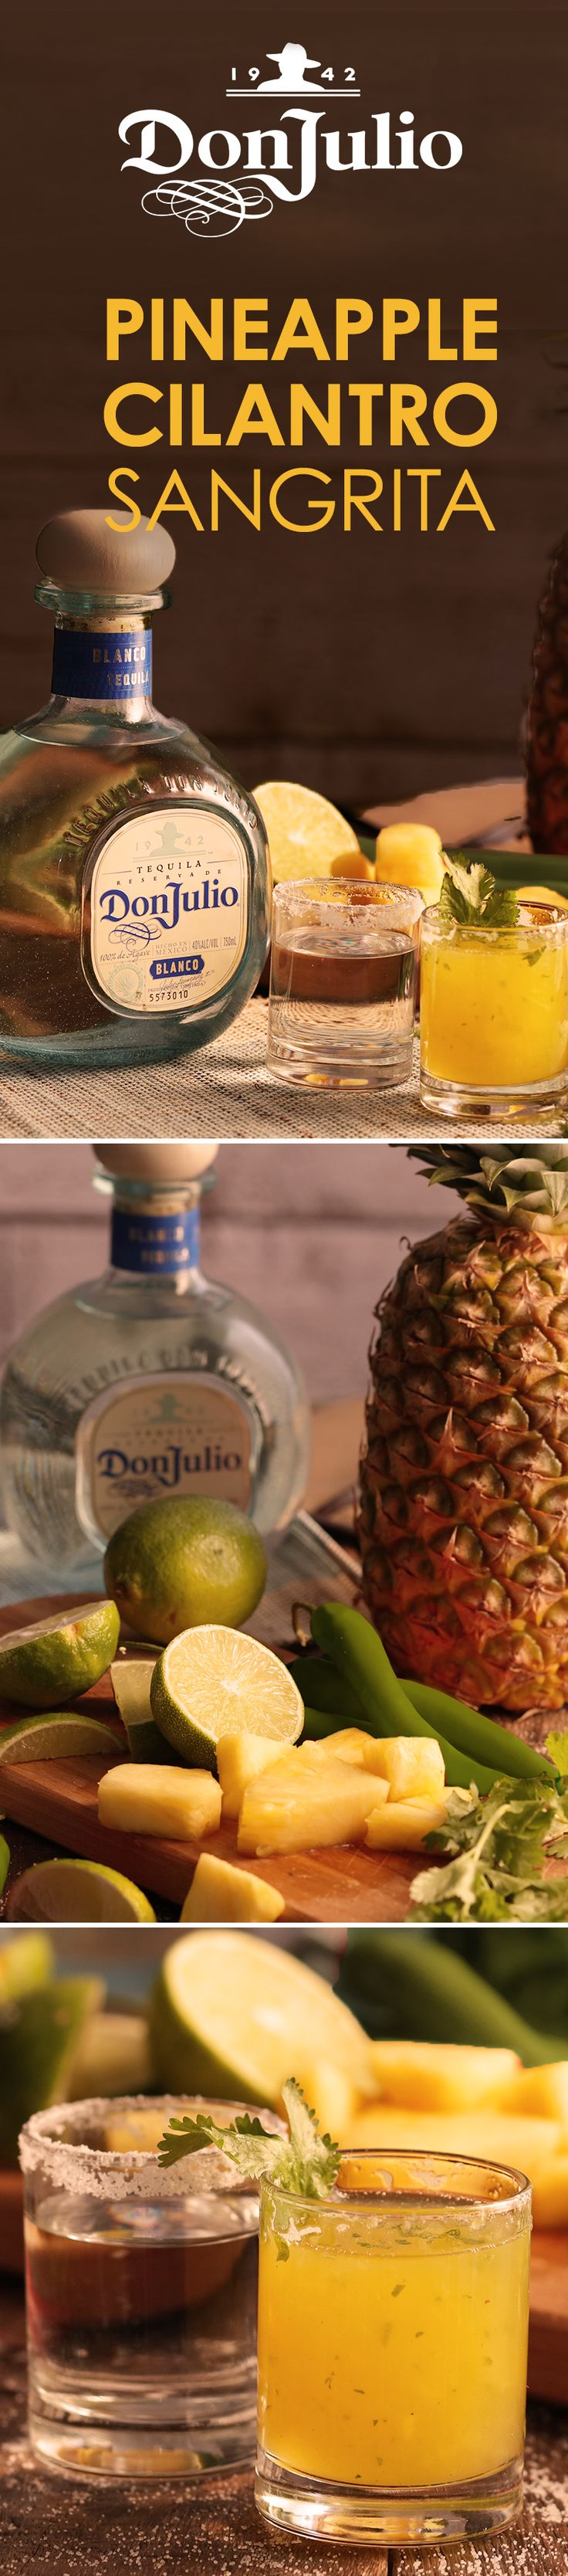 Give a new cocktail a shot this holiday season with the Don Julio Pineapple Cilantro Sangrita. The tropical pineapple cilantro mixture makes for a delicious flavor to enjoy with friends. Blend 1 quart chopped pineapple with one bunch of cilantro. Blend for 5 mins. Strain through large sieve. In a blender, add 4 cups pineapple-cilantro mixture, 4 oz lime juice, ½ tsp salt, & blend. Shake 4 oz with 2 serrano pepper slices. Strain into chipotle salt rimmed shot glass and pair with Don Julio…